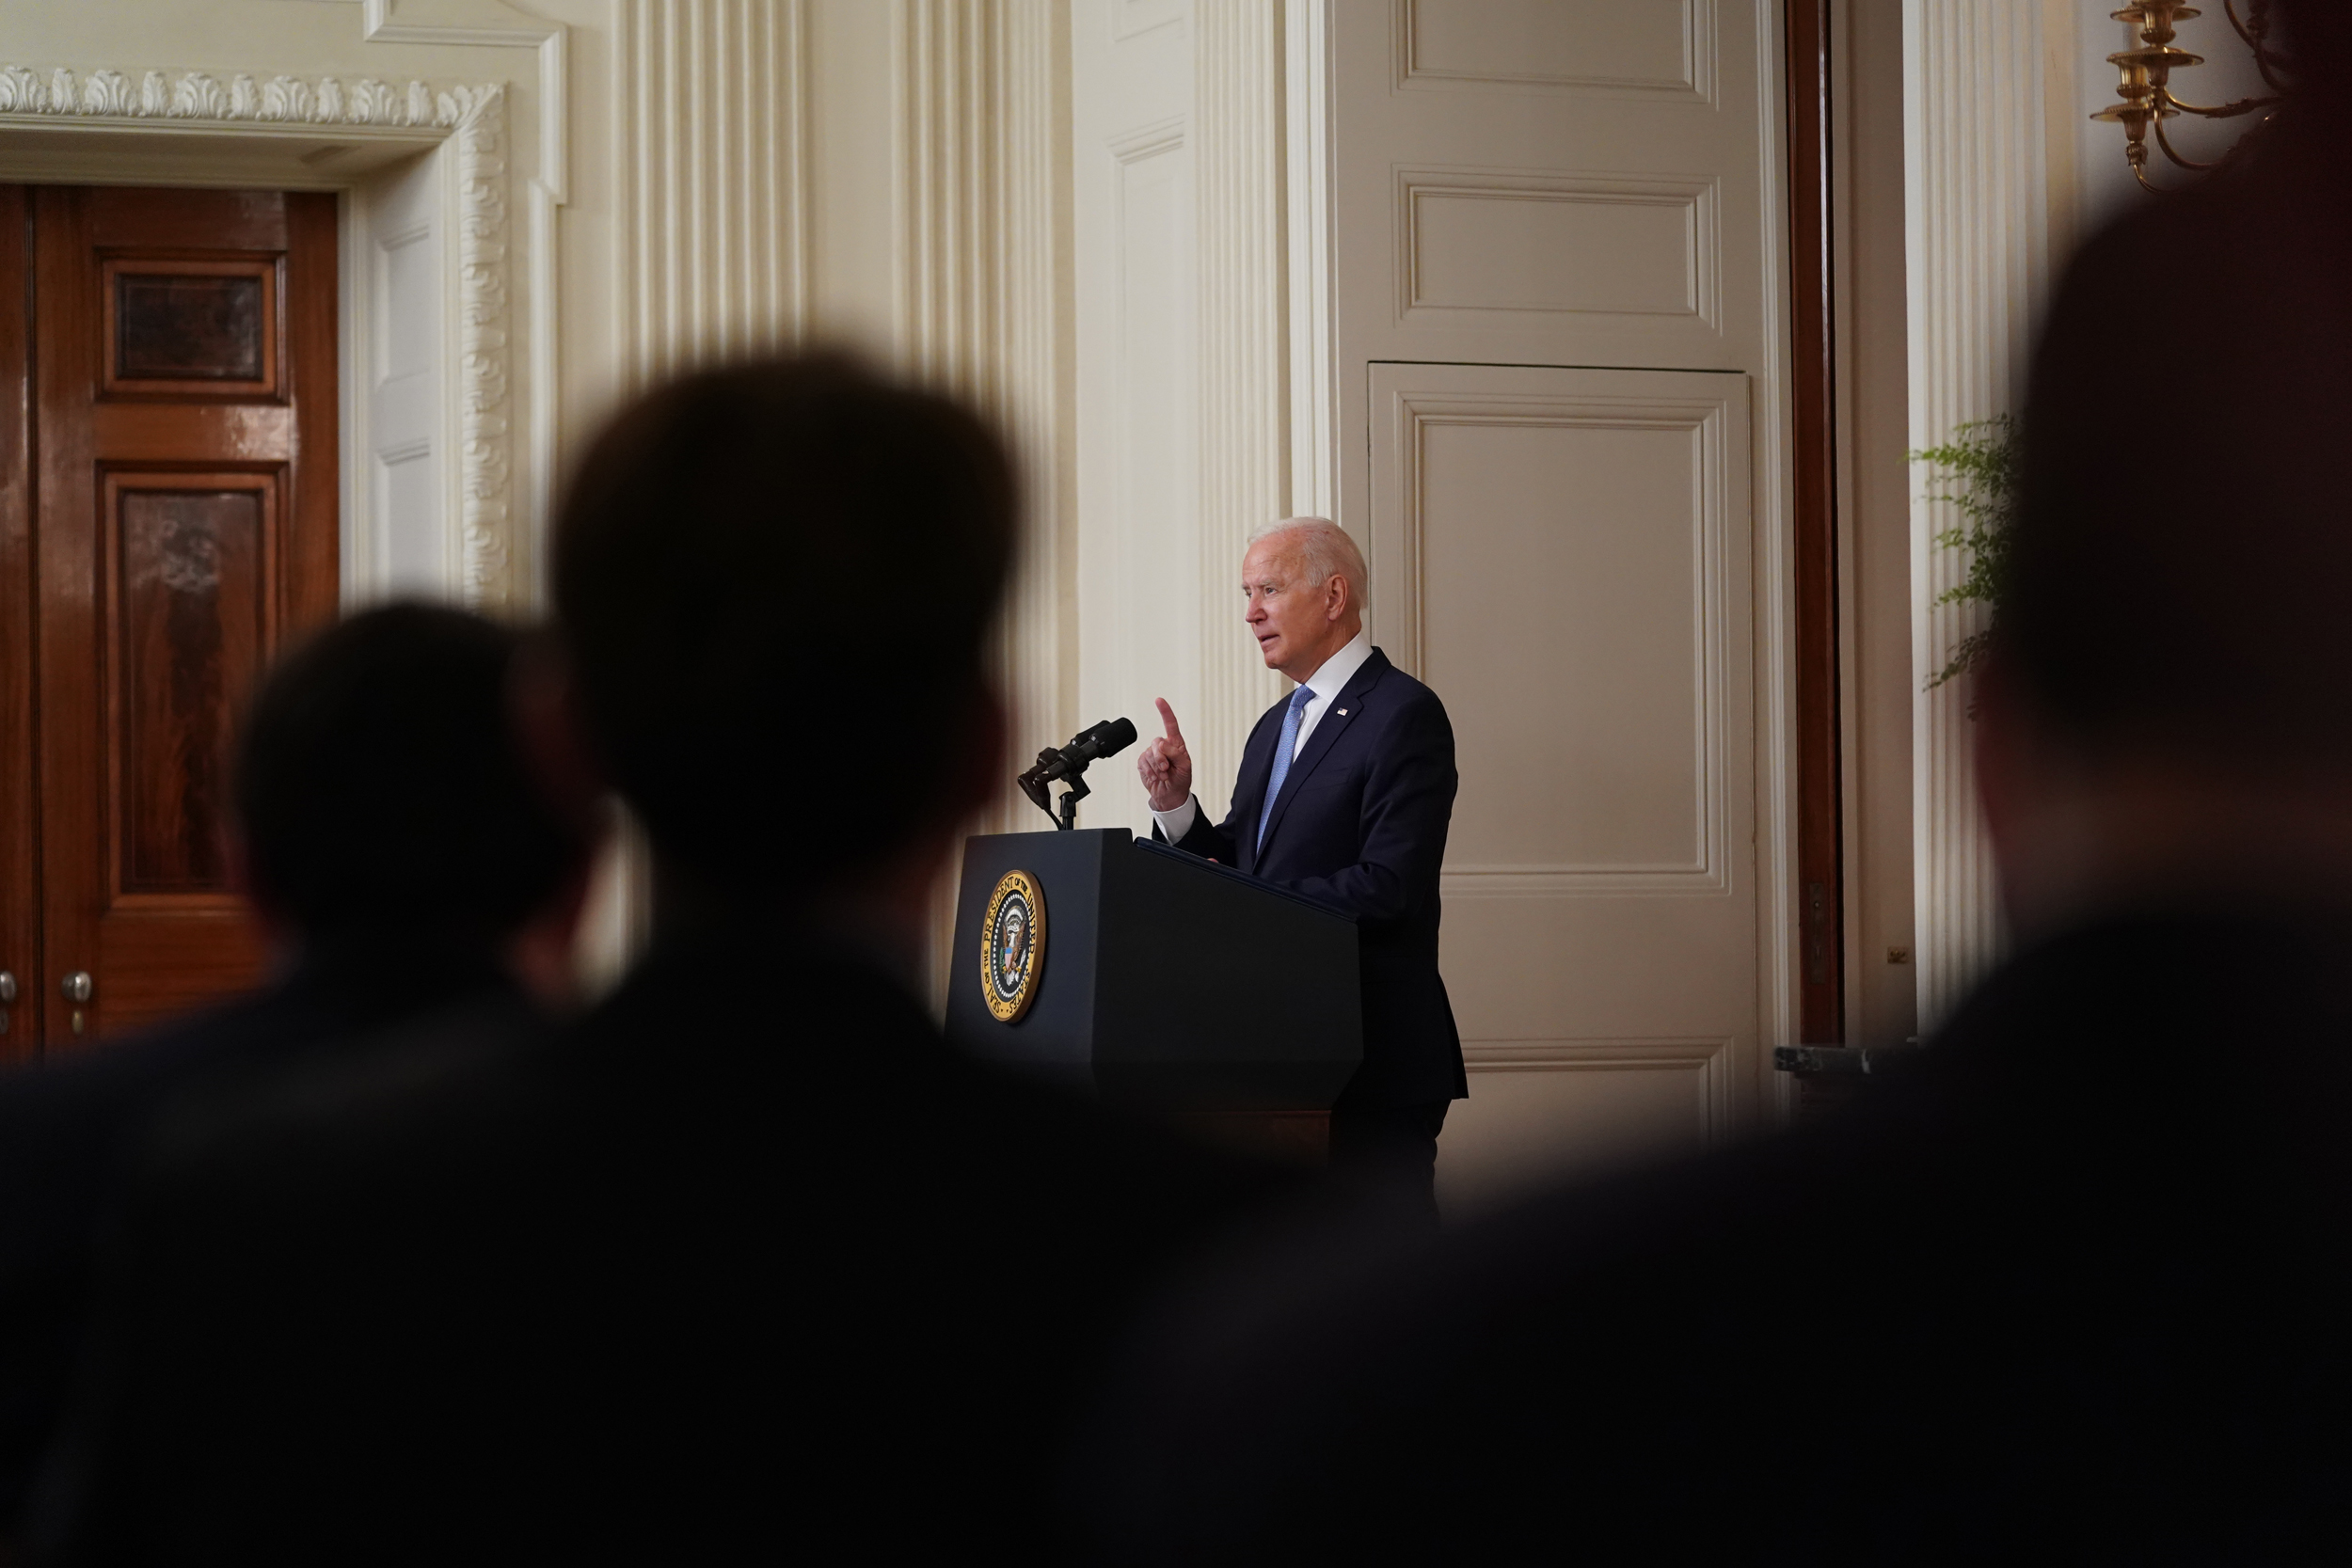 Republicans keen on hammering Biden on inflation as the White House projects hike